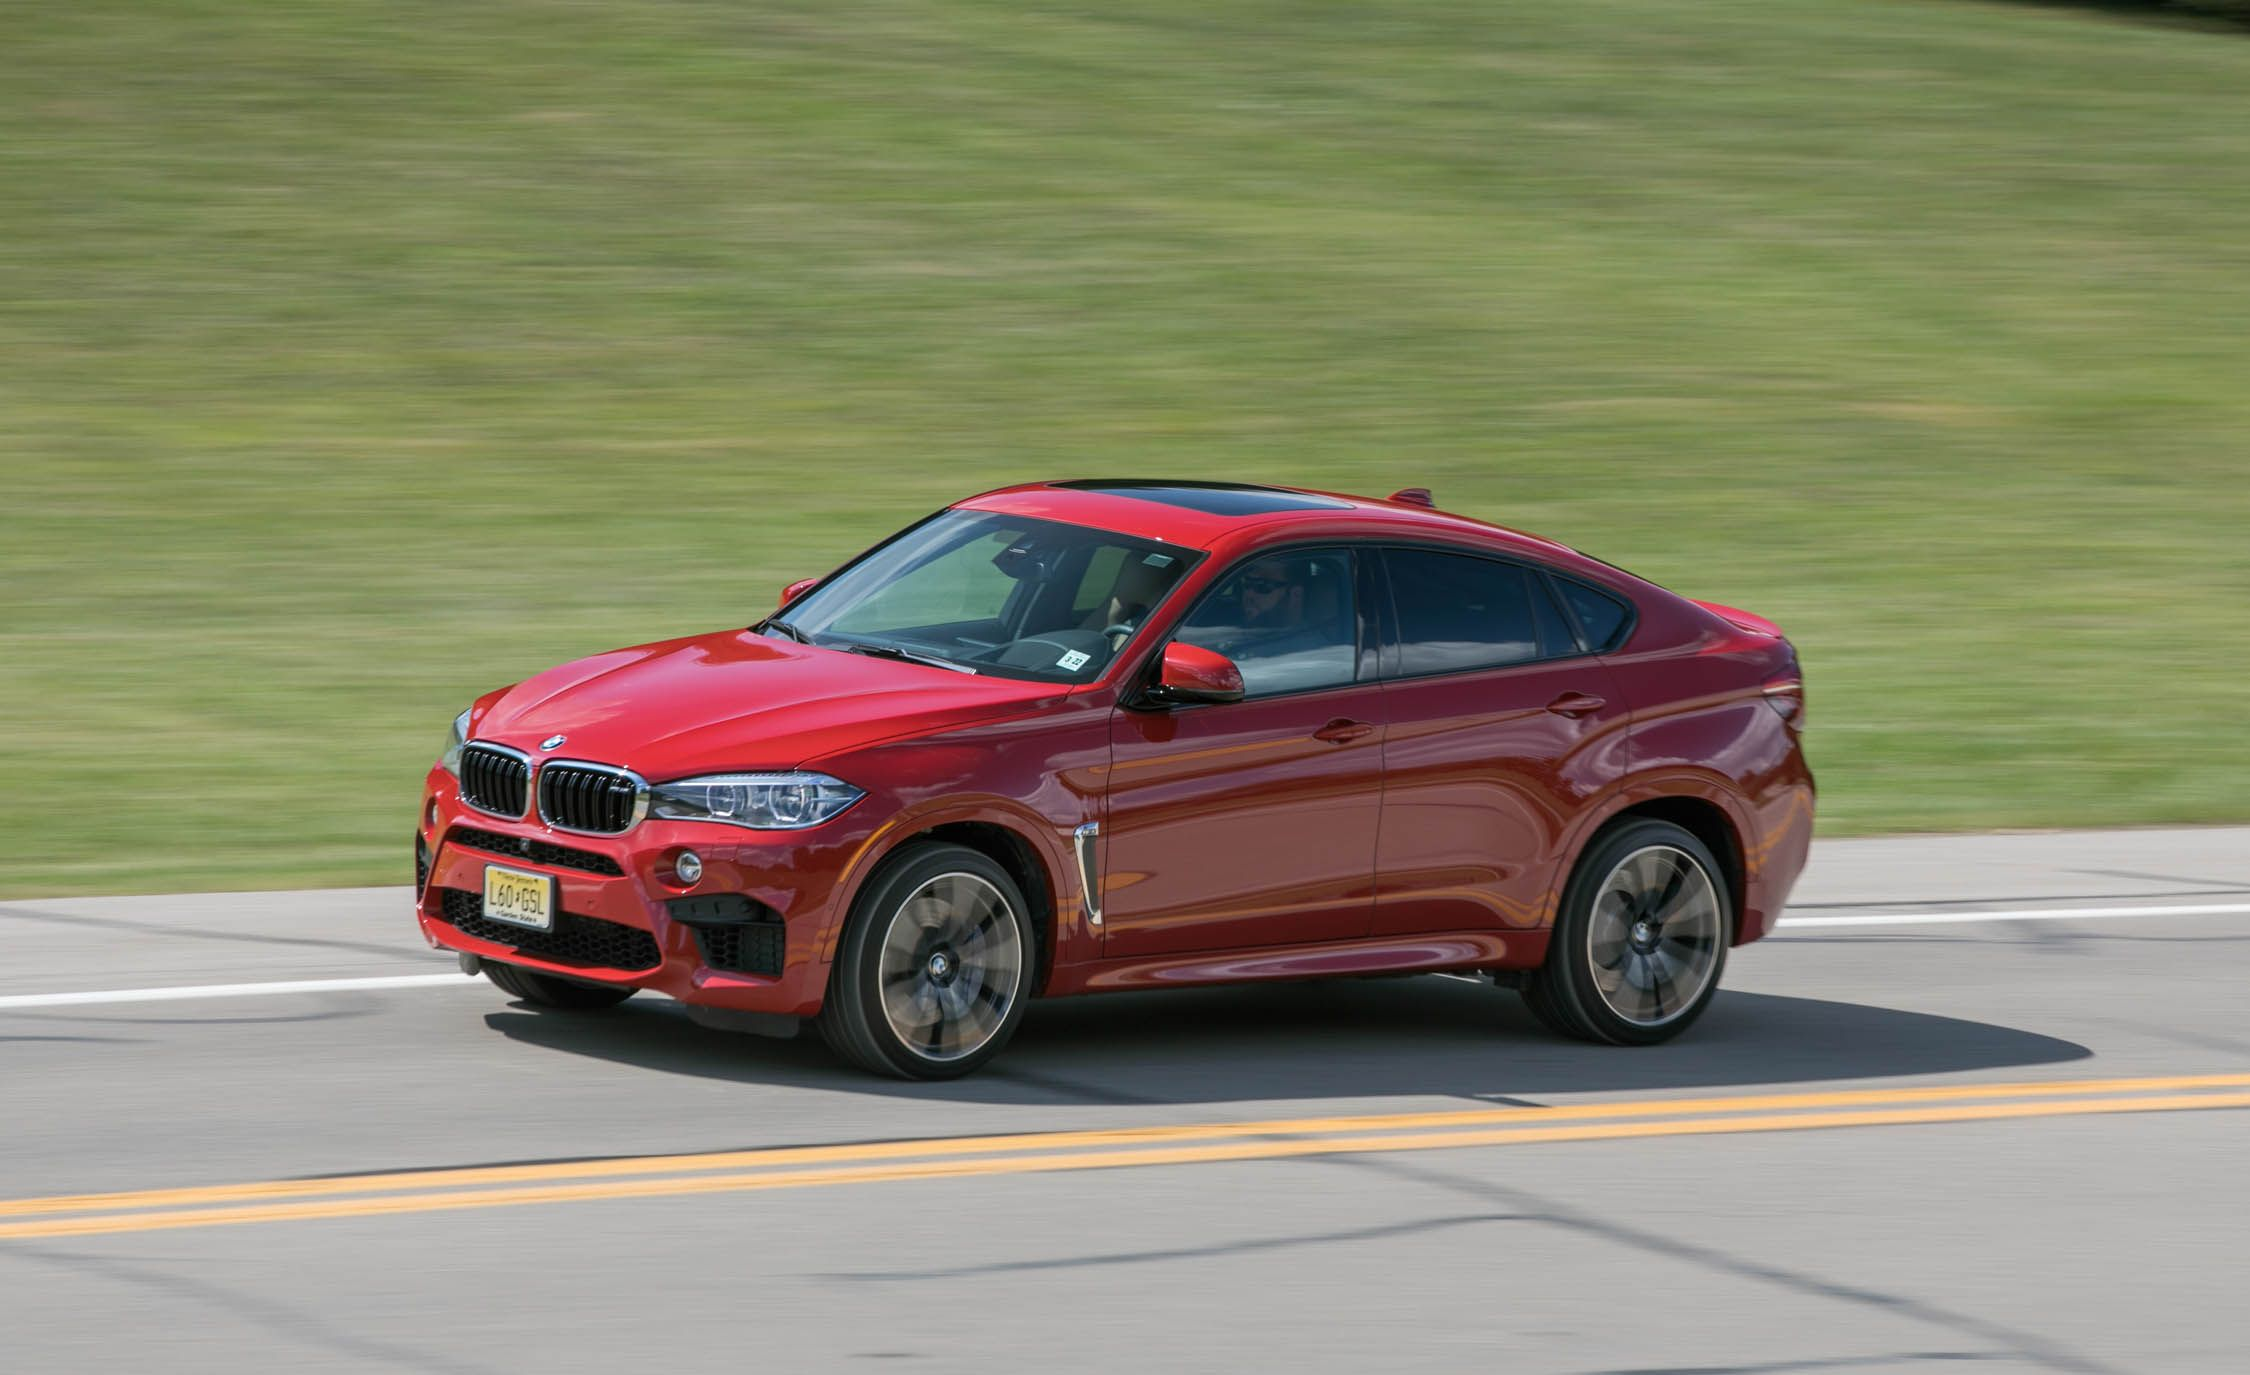 2018 Bmw X6 M Safety And Driver Assistance Review Car And Driver